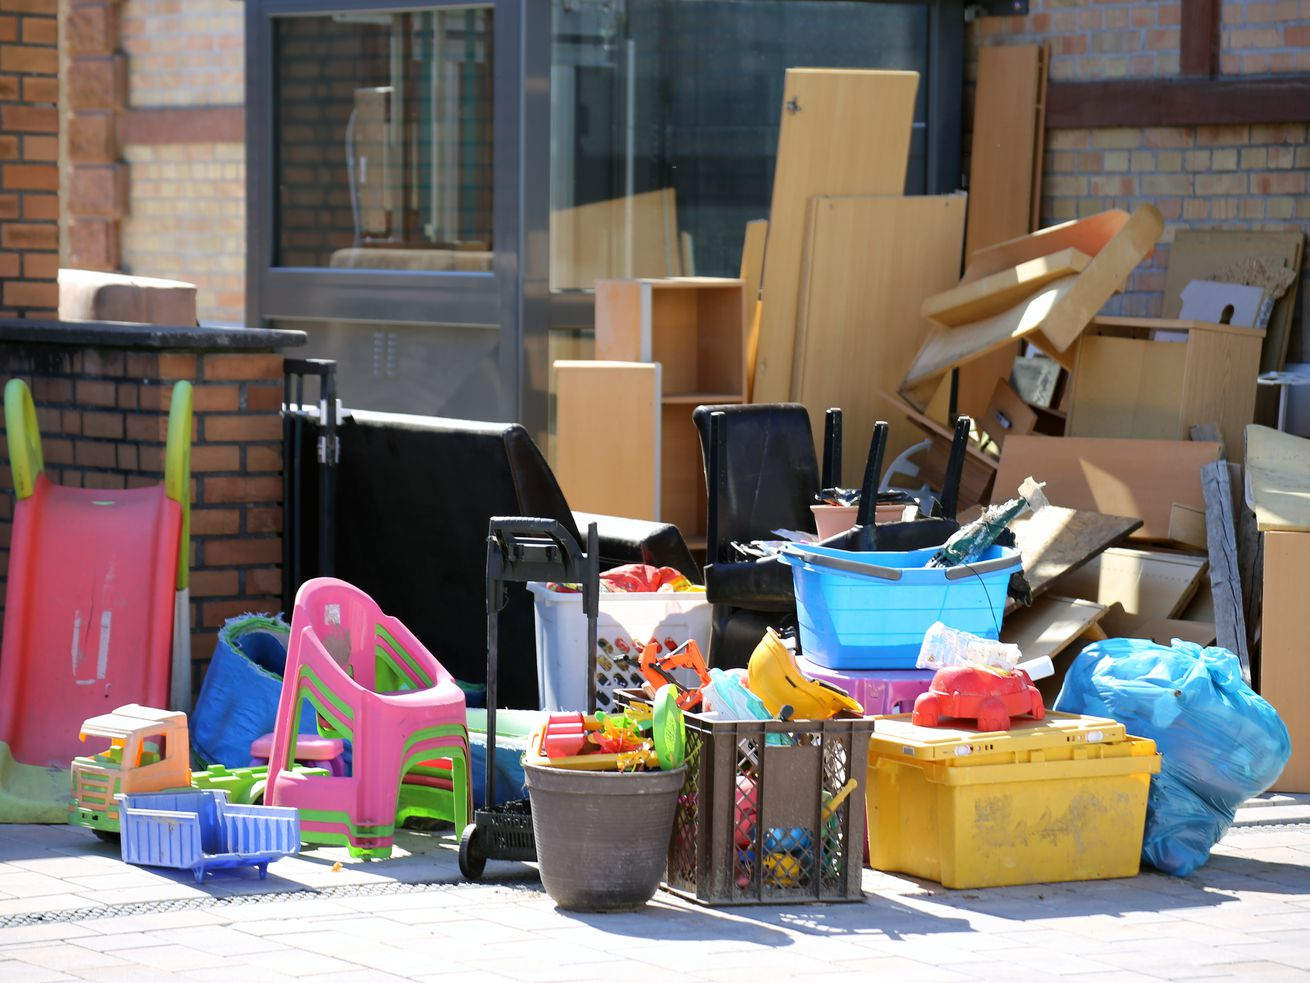 Boxes, toys, and other items on a sidewalk, in front of a building.